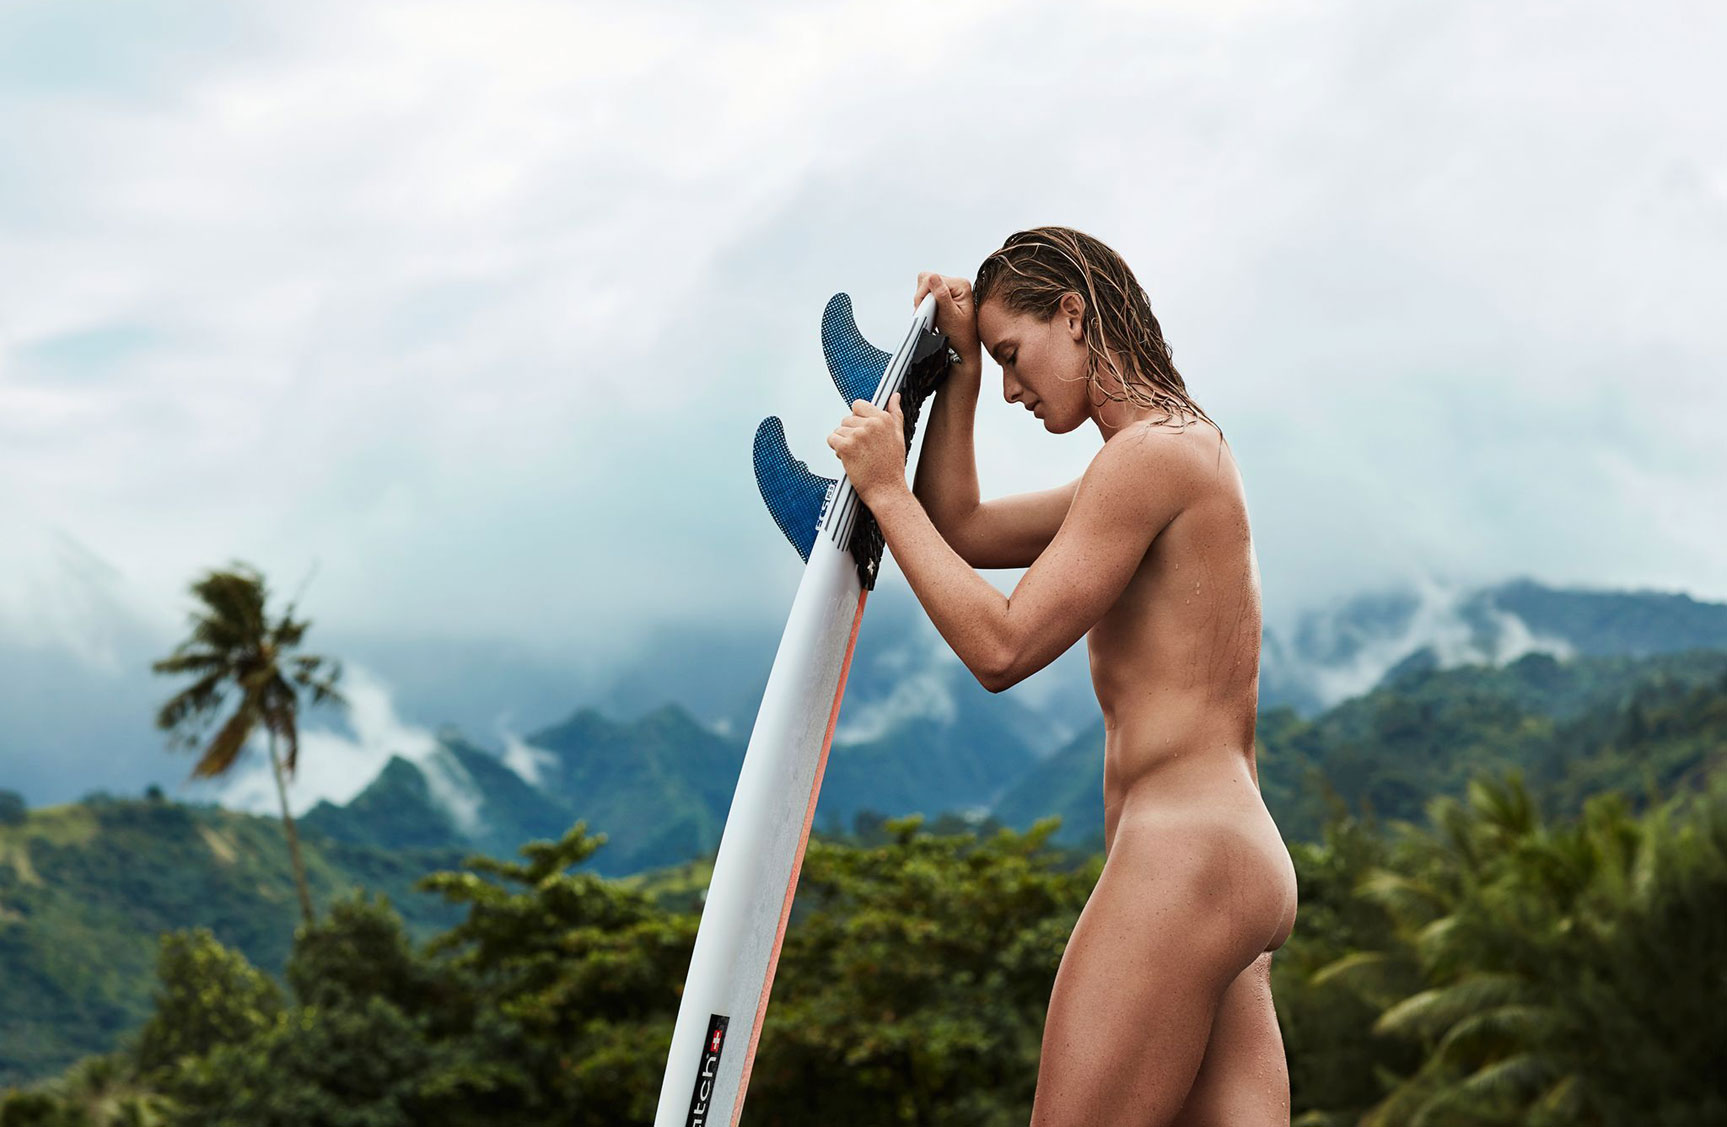 ESPN Magazine The Body Issue 2016 - Courtney Conlogue / Кортни Конлог - Культ тела журнала ESPN